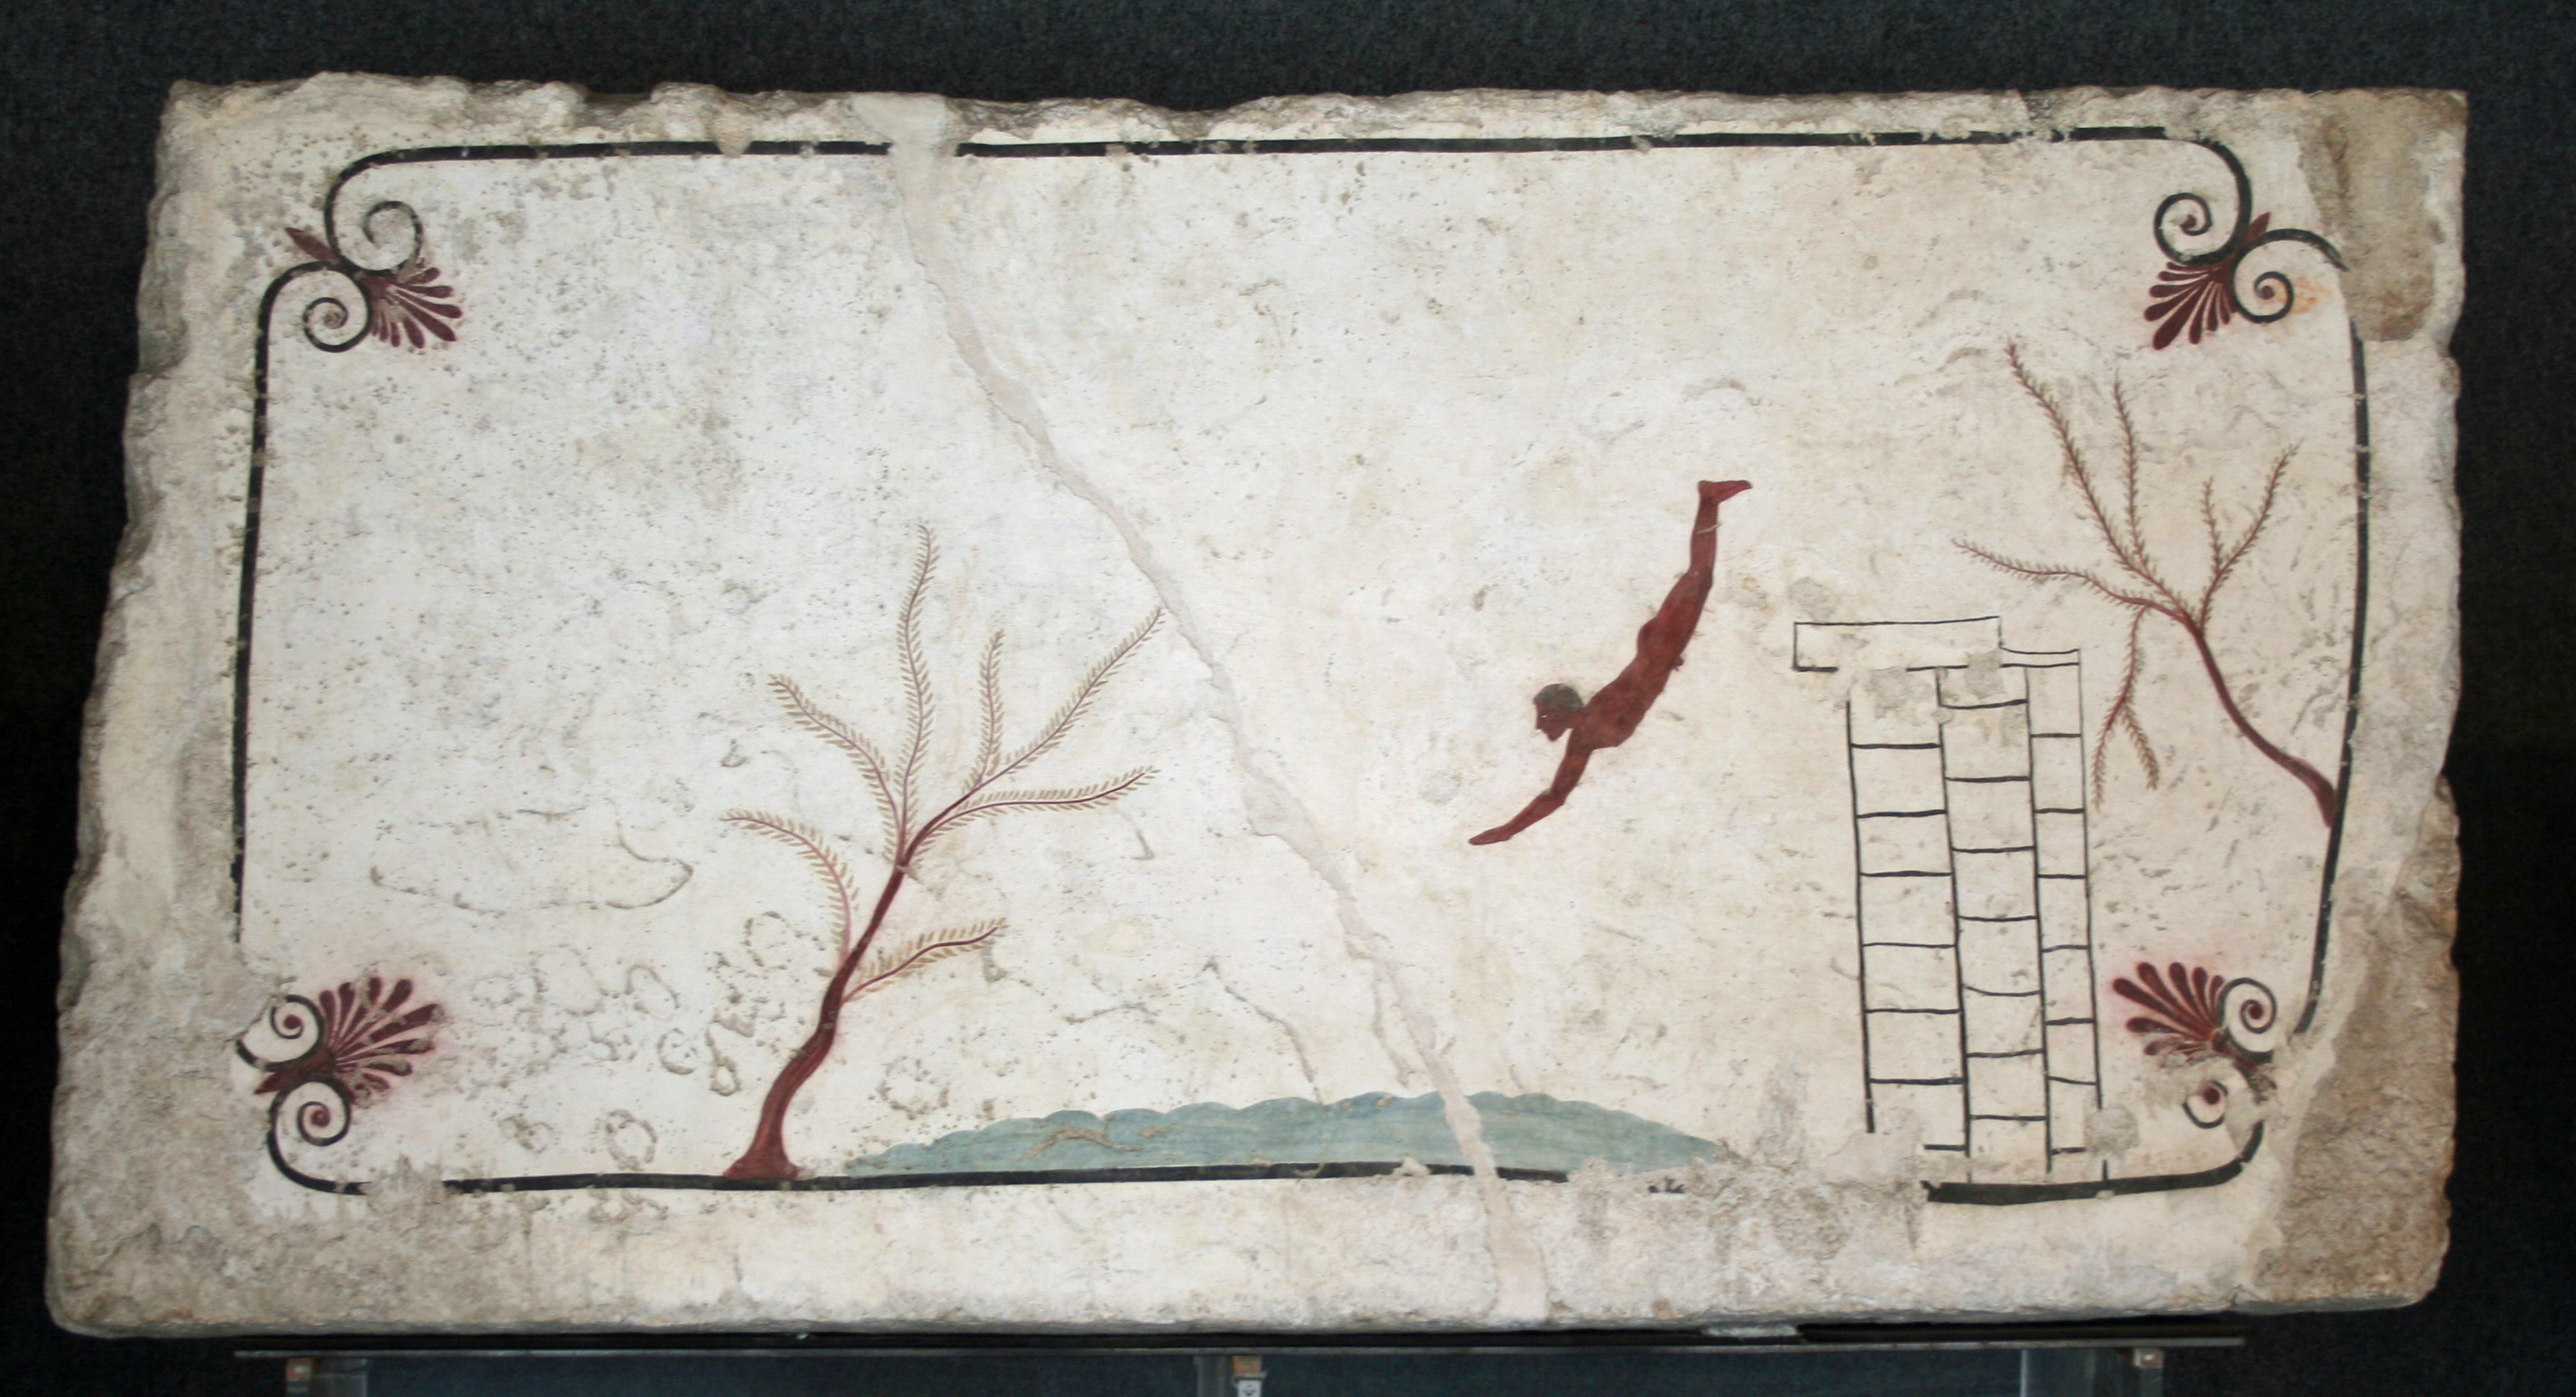 The_Tomb_of_the_Diver_-_Paestum_-_Italy[1]